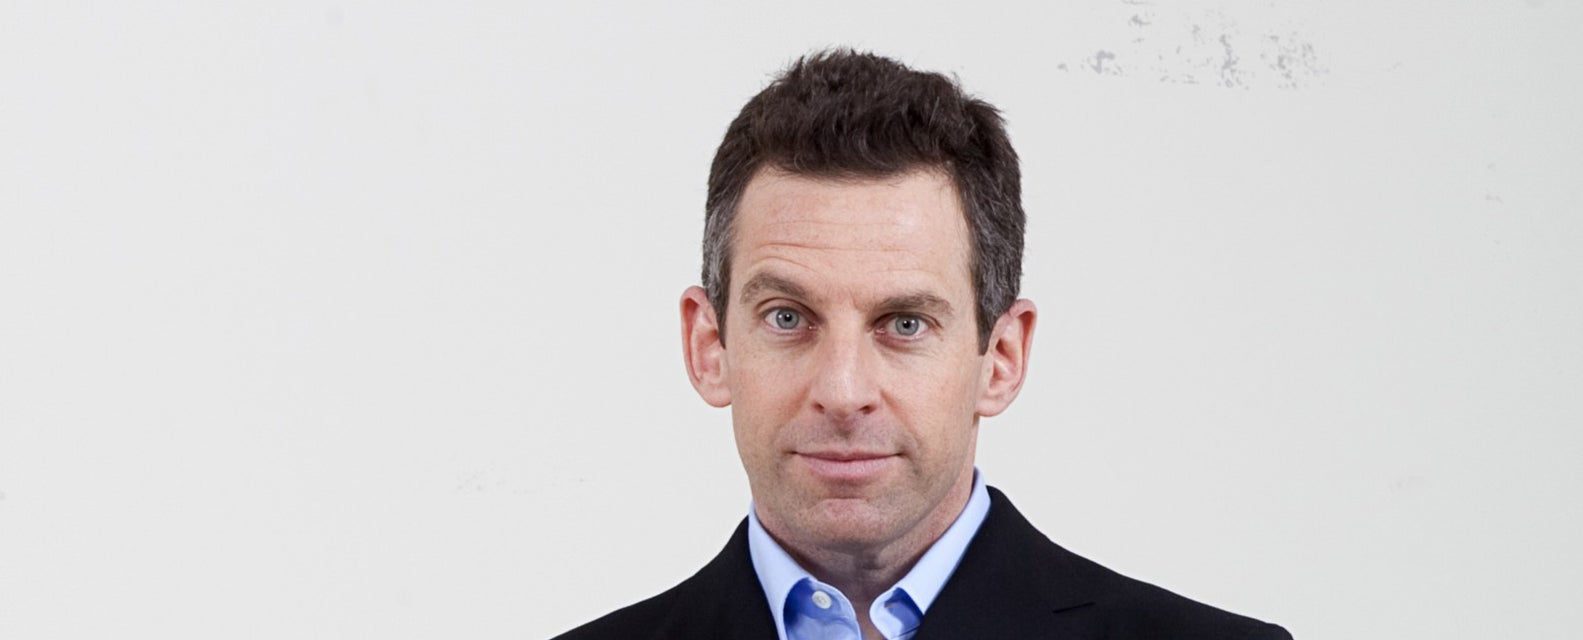 Sam Harris Tickets